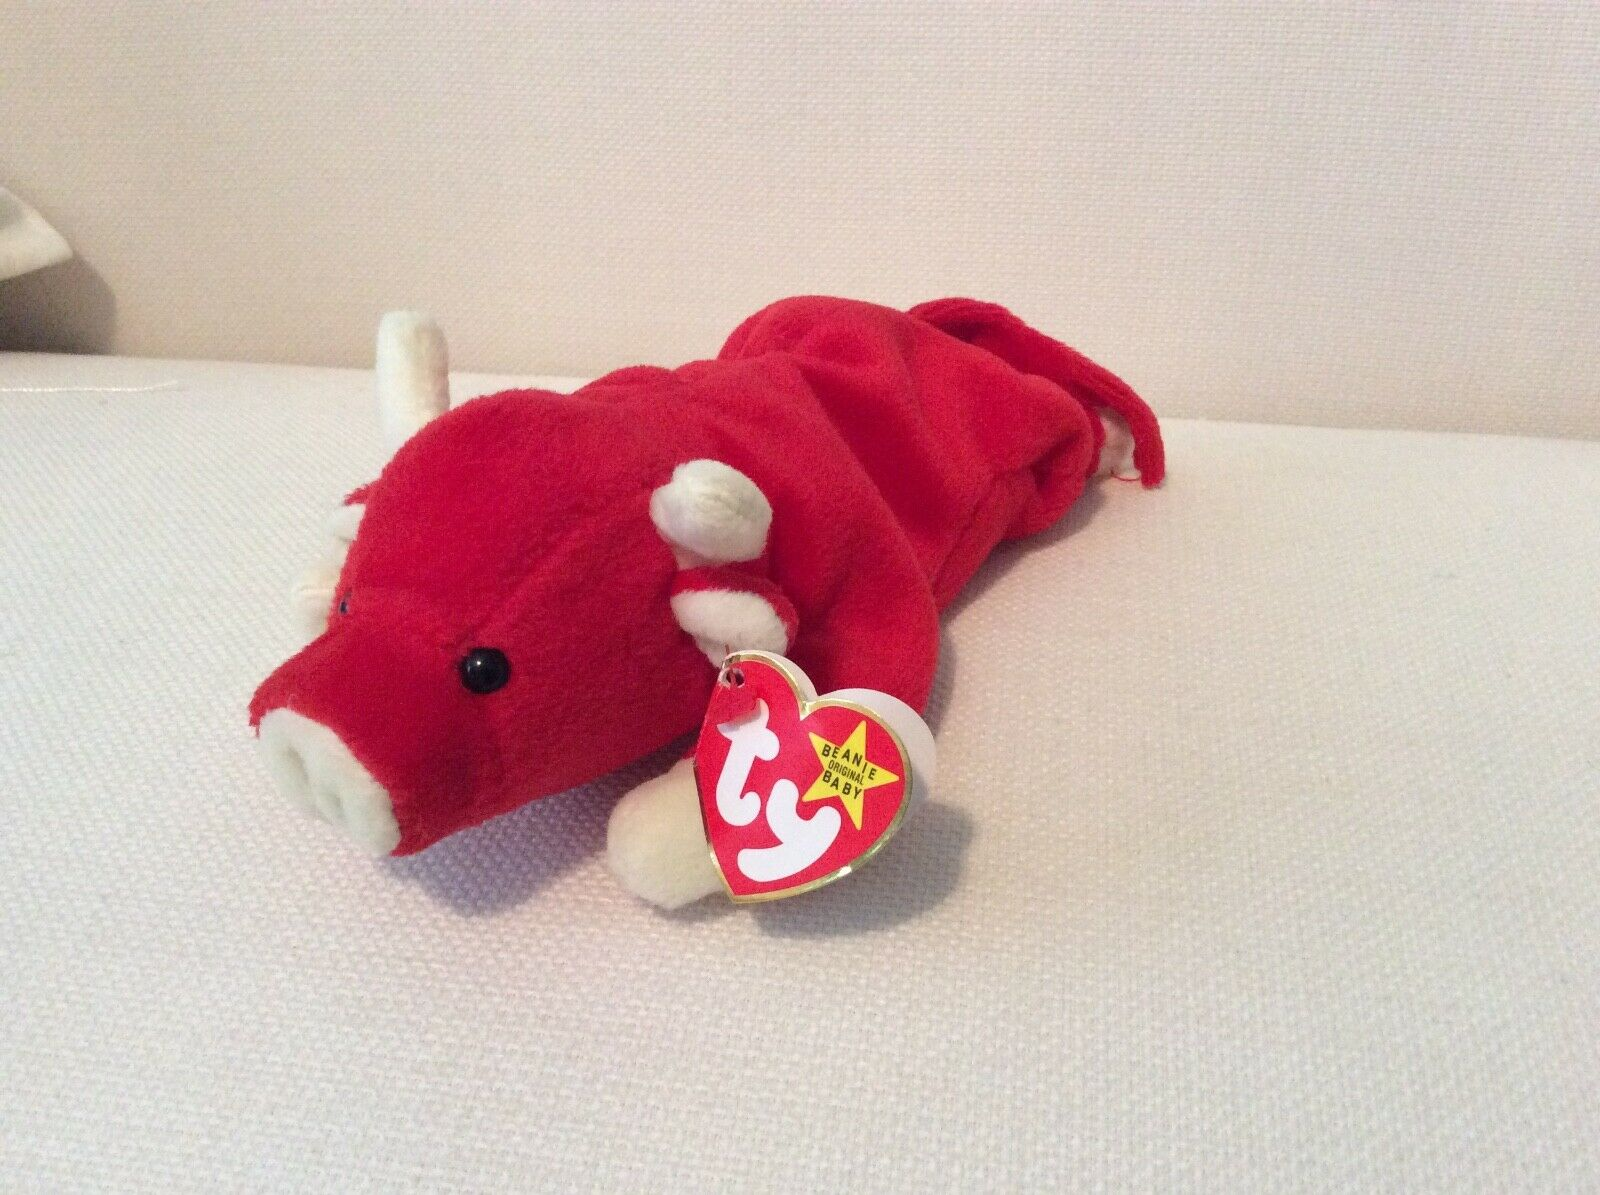 Ty Beanie Baby Rare Snort 4th Generation 1995 collectible, ODDITY